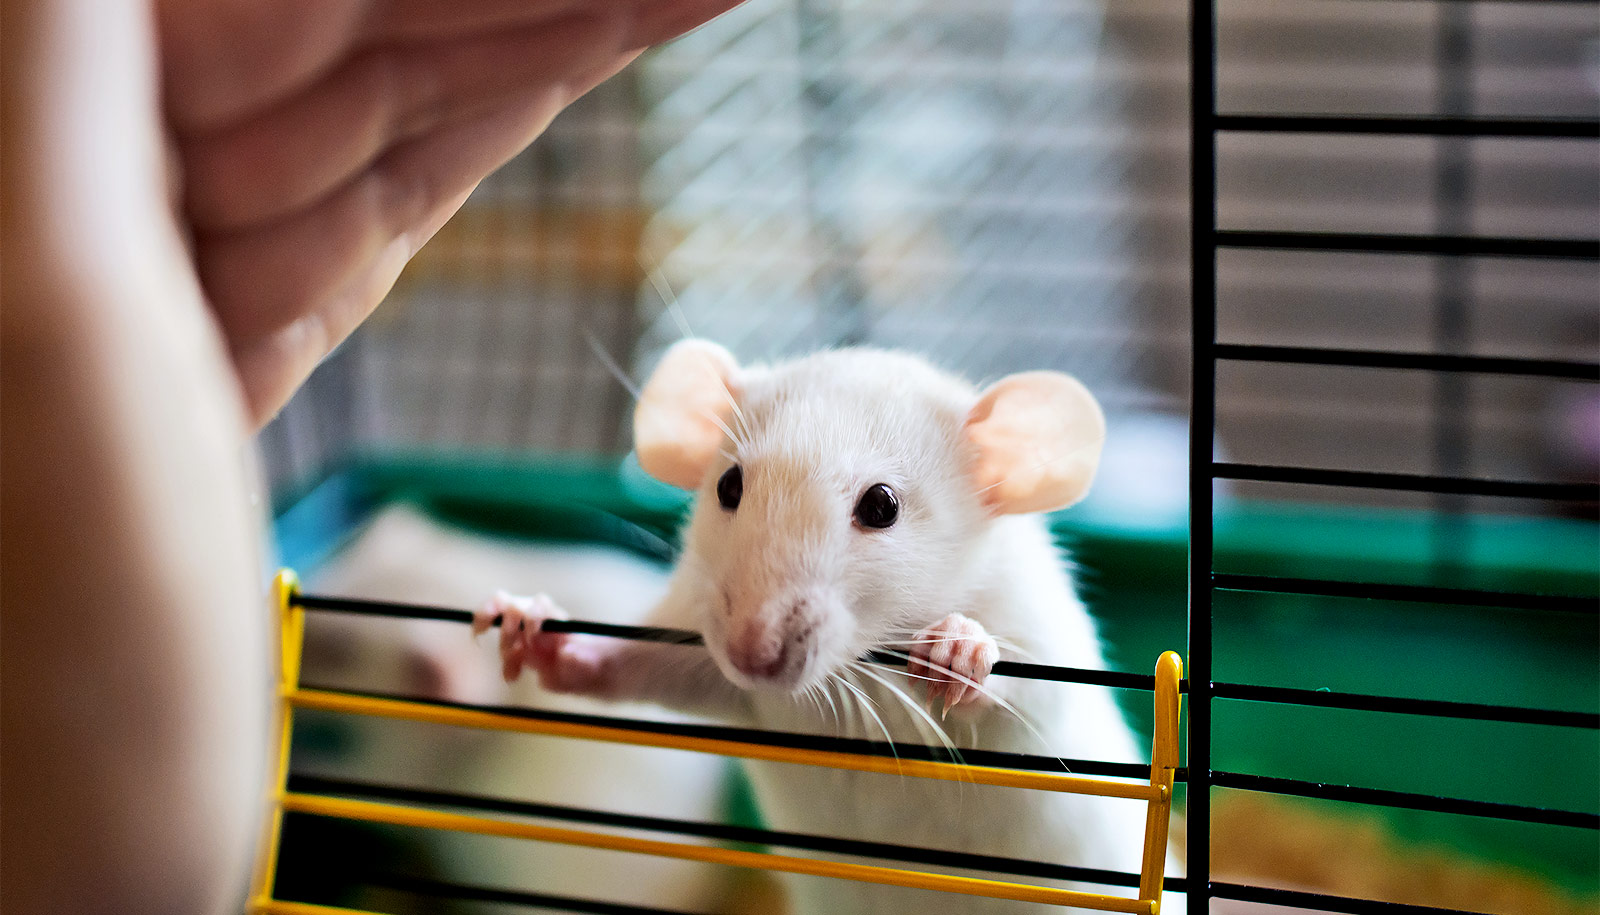 New approach prevents muscular dystrophy damage in mice - Futurity